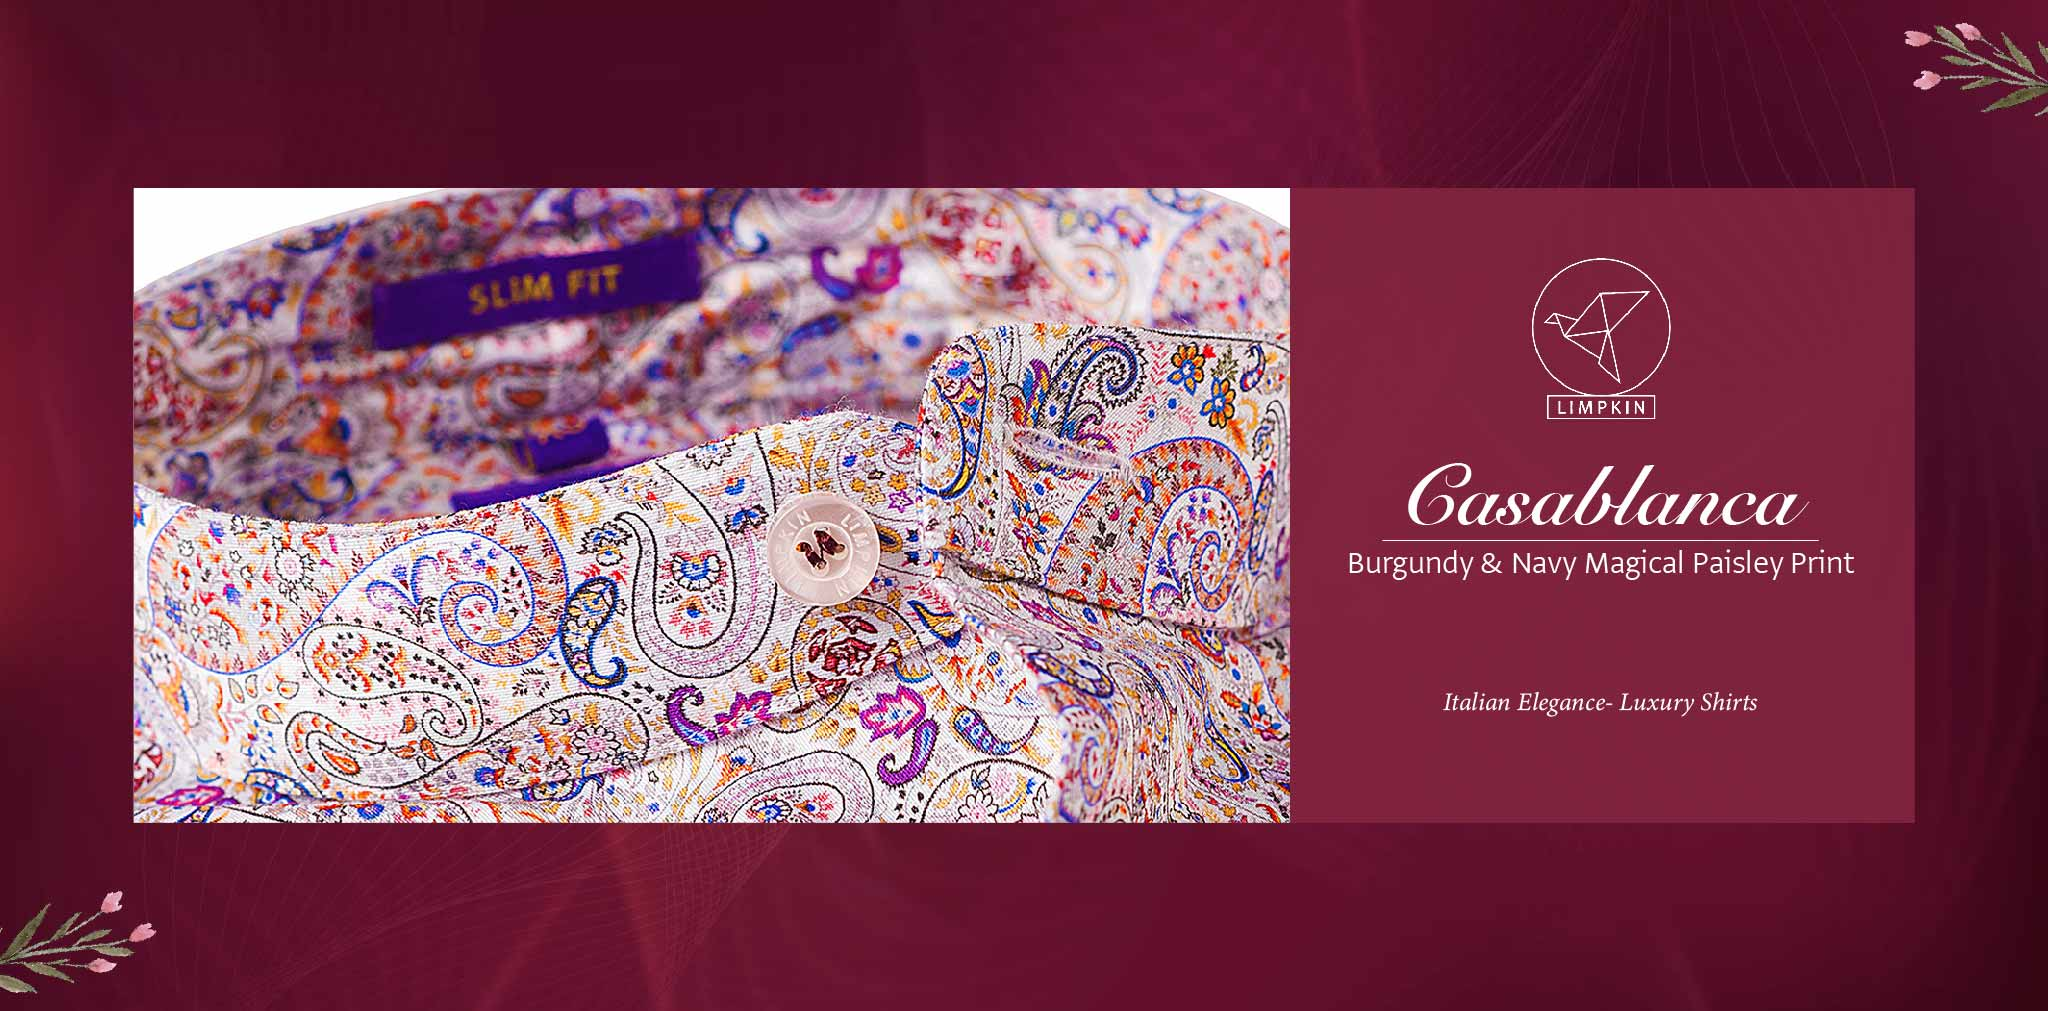 Casablanca- Burgundy & Navy Magical Paisley Print- Delivery from 6th August - Banner